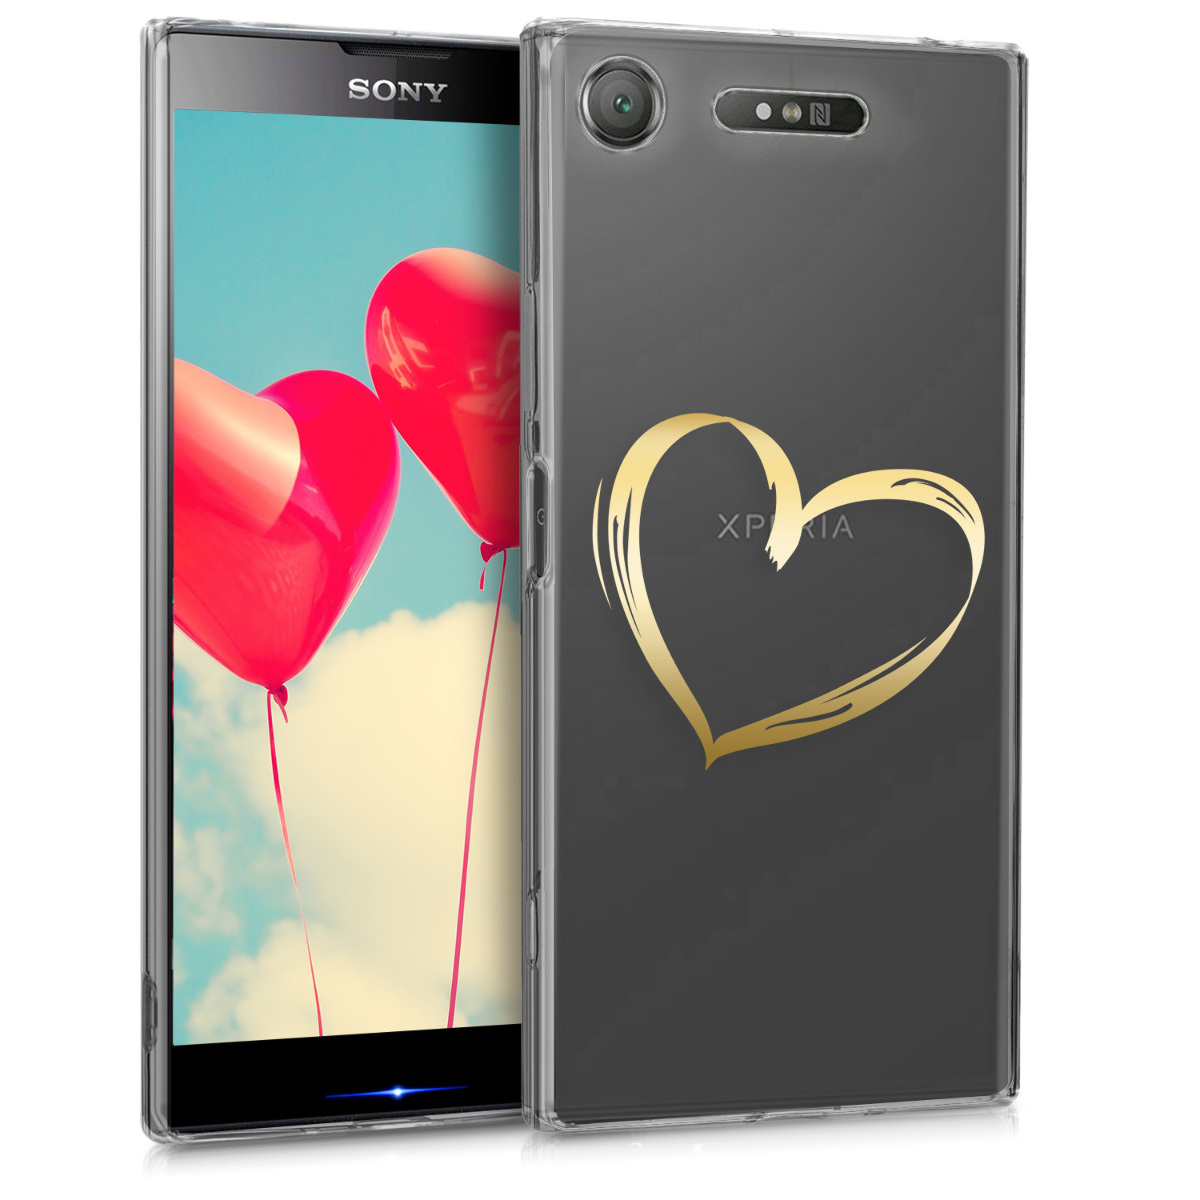 KW Θήκη Σιλικόνης Sony Xperia XZ1 - Golden Heart / Transparent (44325.11)